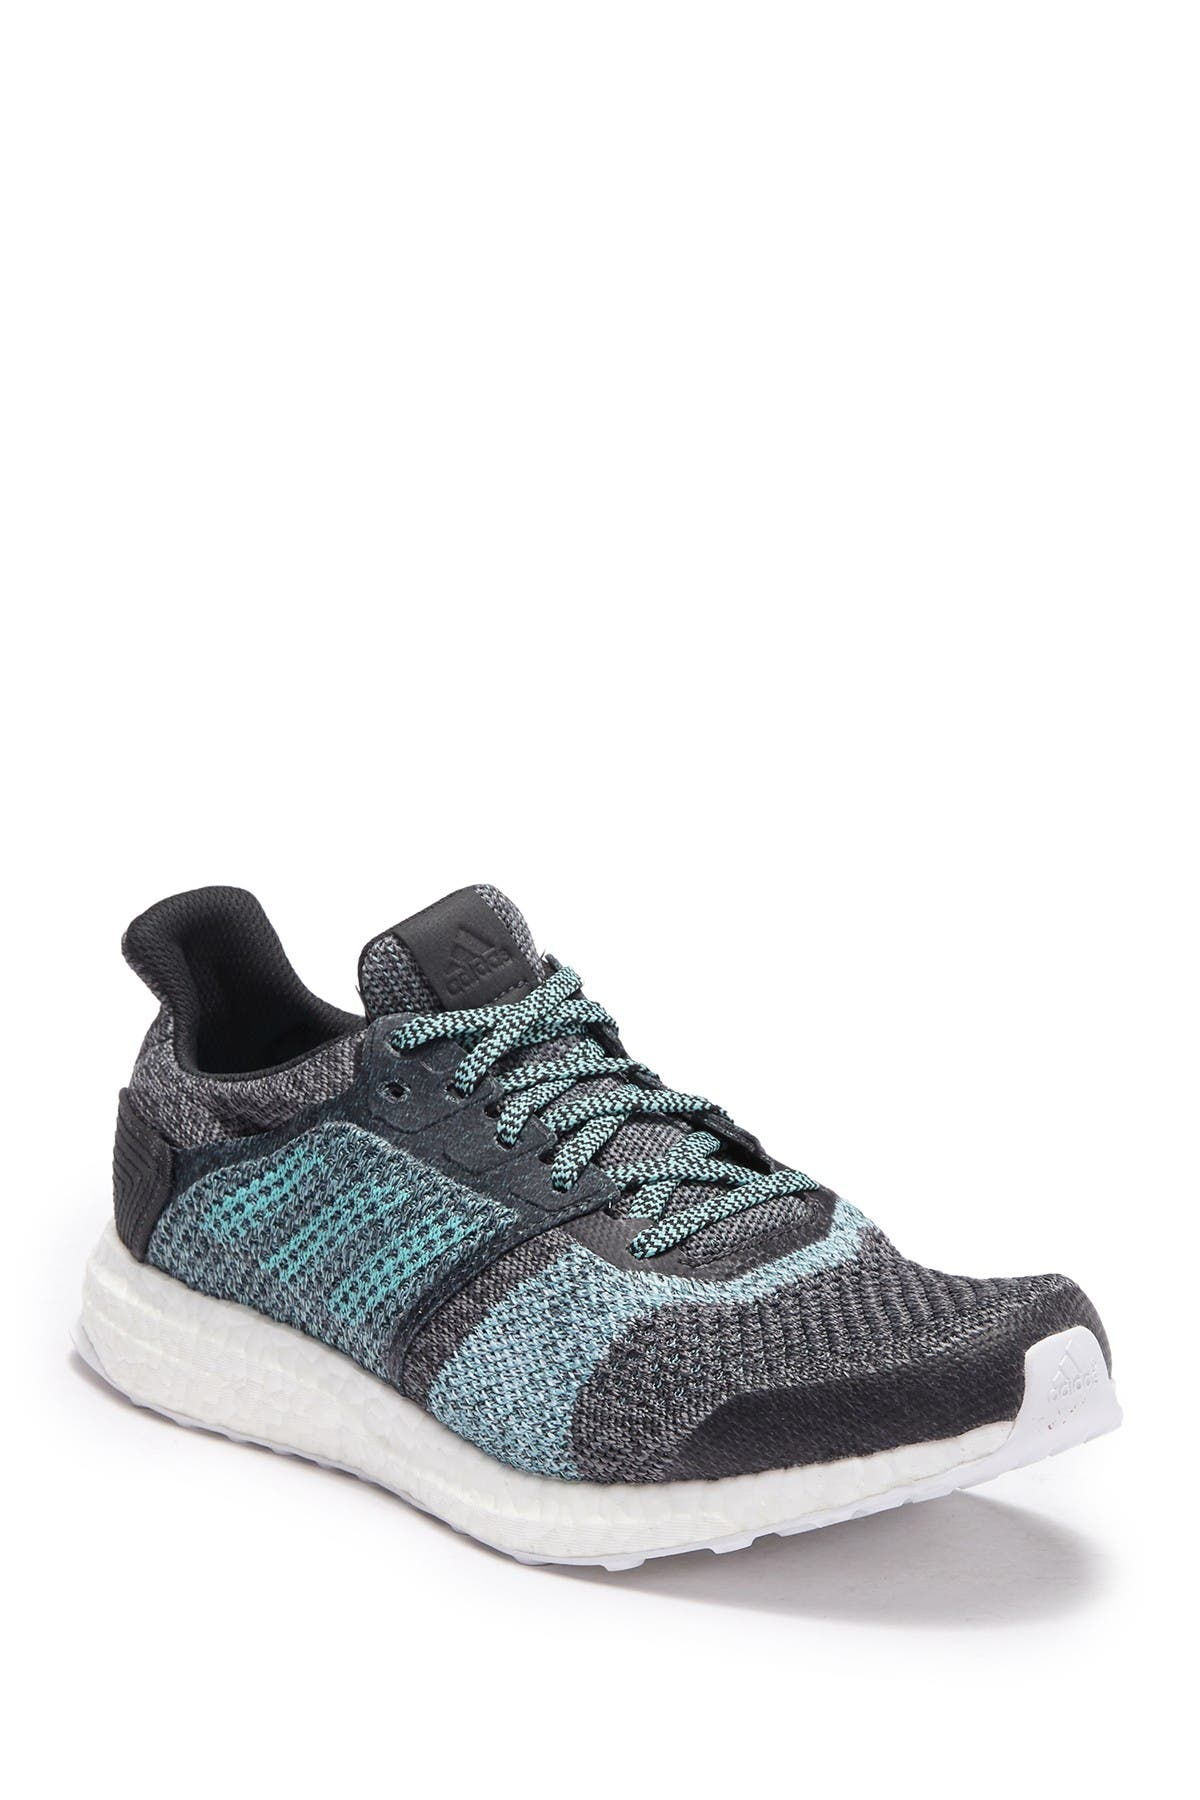 ultra boost st m parley